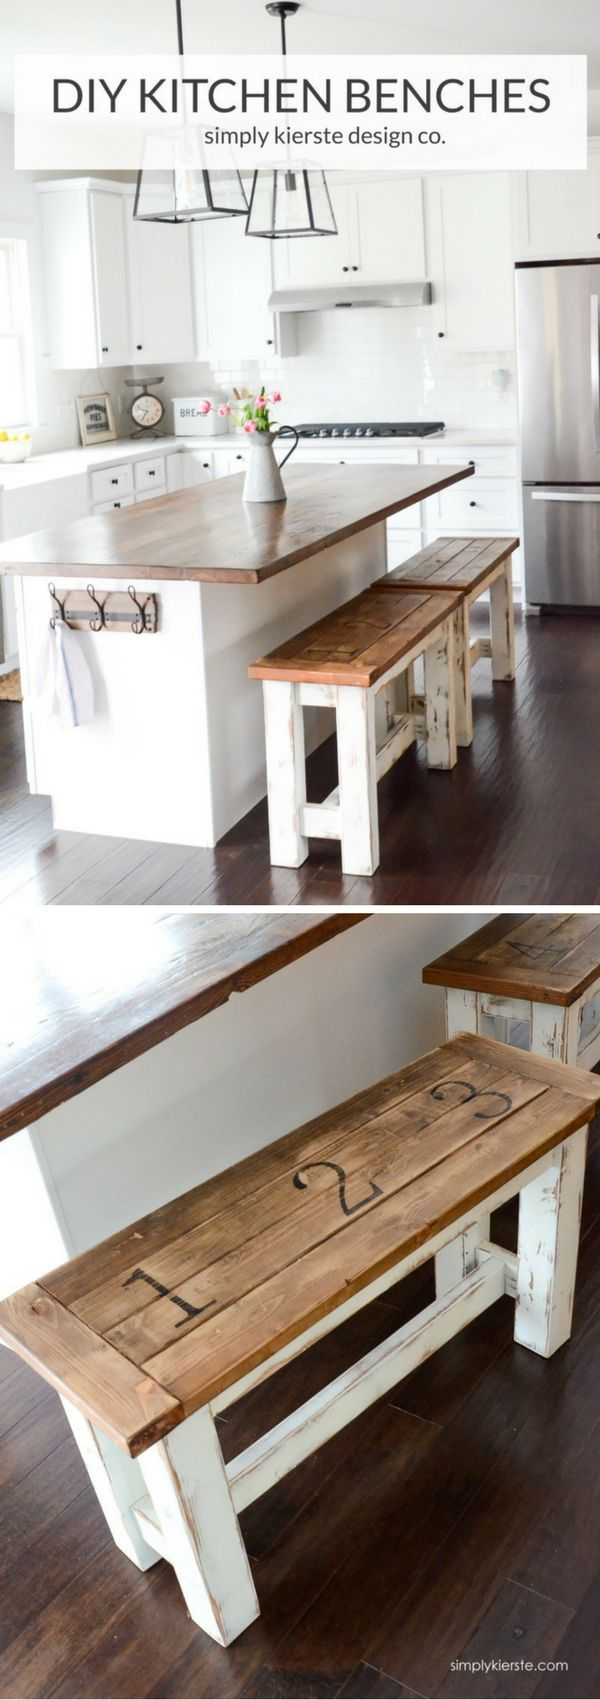 Check Out The Tutorial On How To Make A DIY Kitchen Bench @istandarddesign  · Küche BeigeIdeen ...